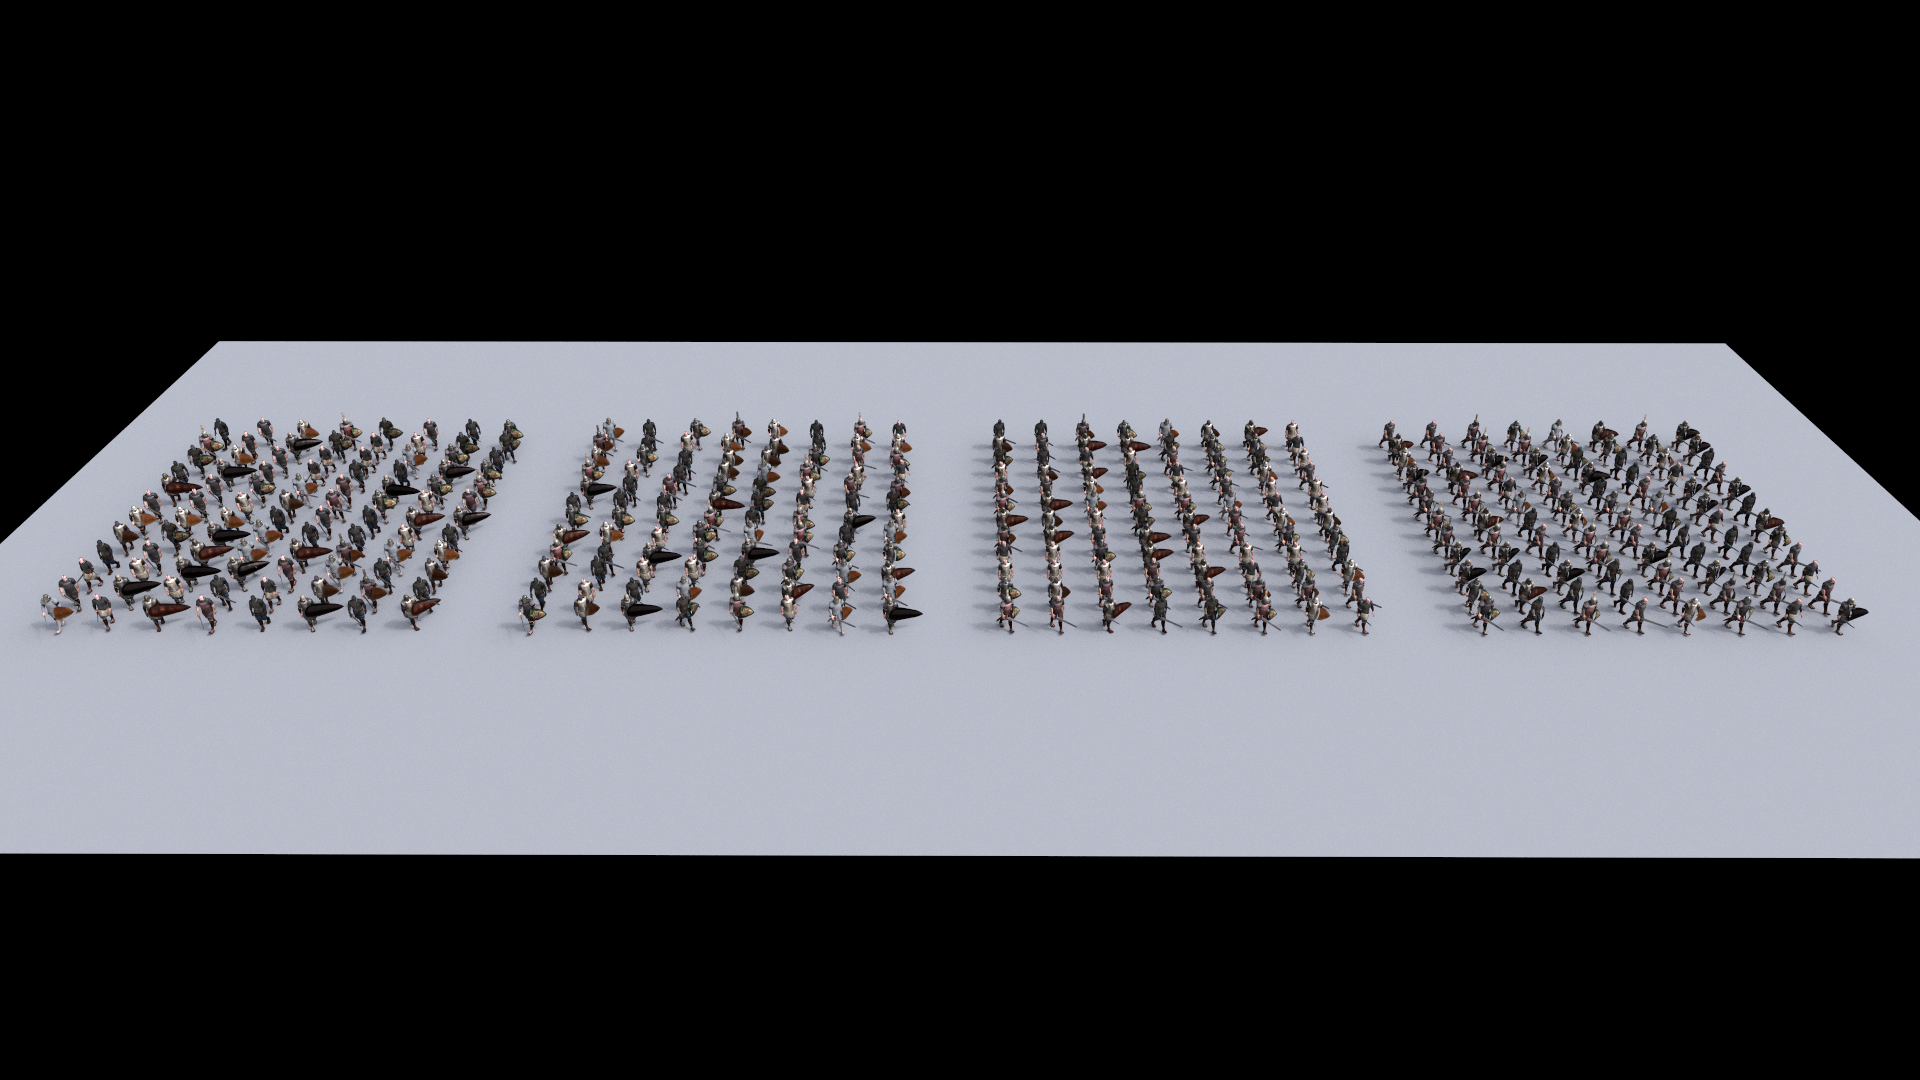 all_soldiers_01.png